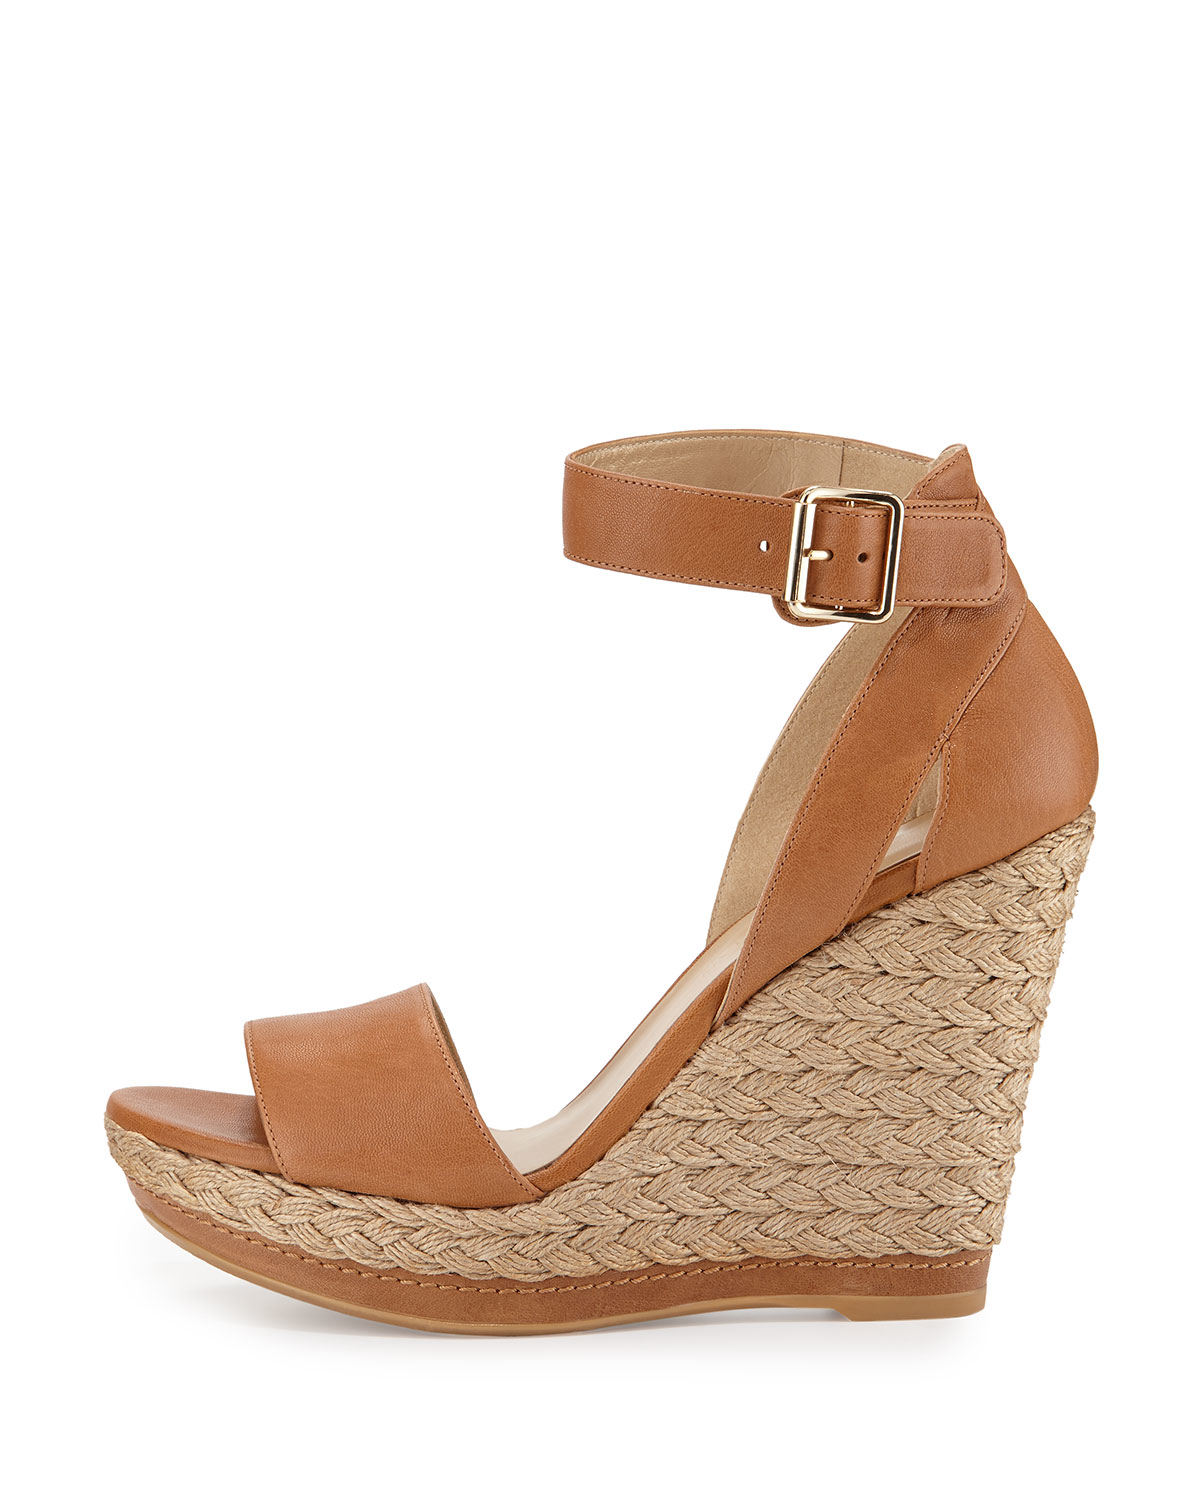 Stuart Weitzman Leather Wedge Slide Sandals cheap discount free shipping extremely r0va3VnXeY